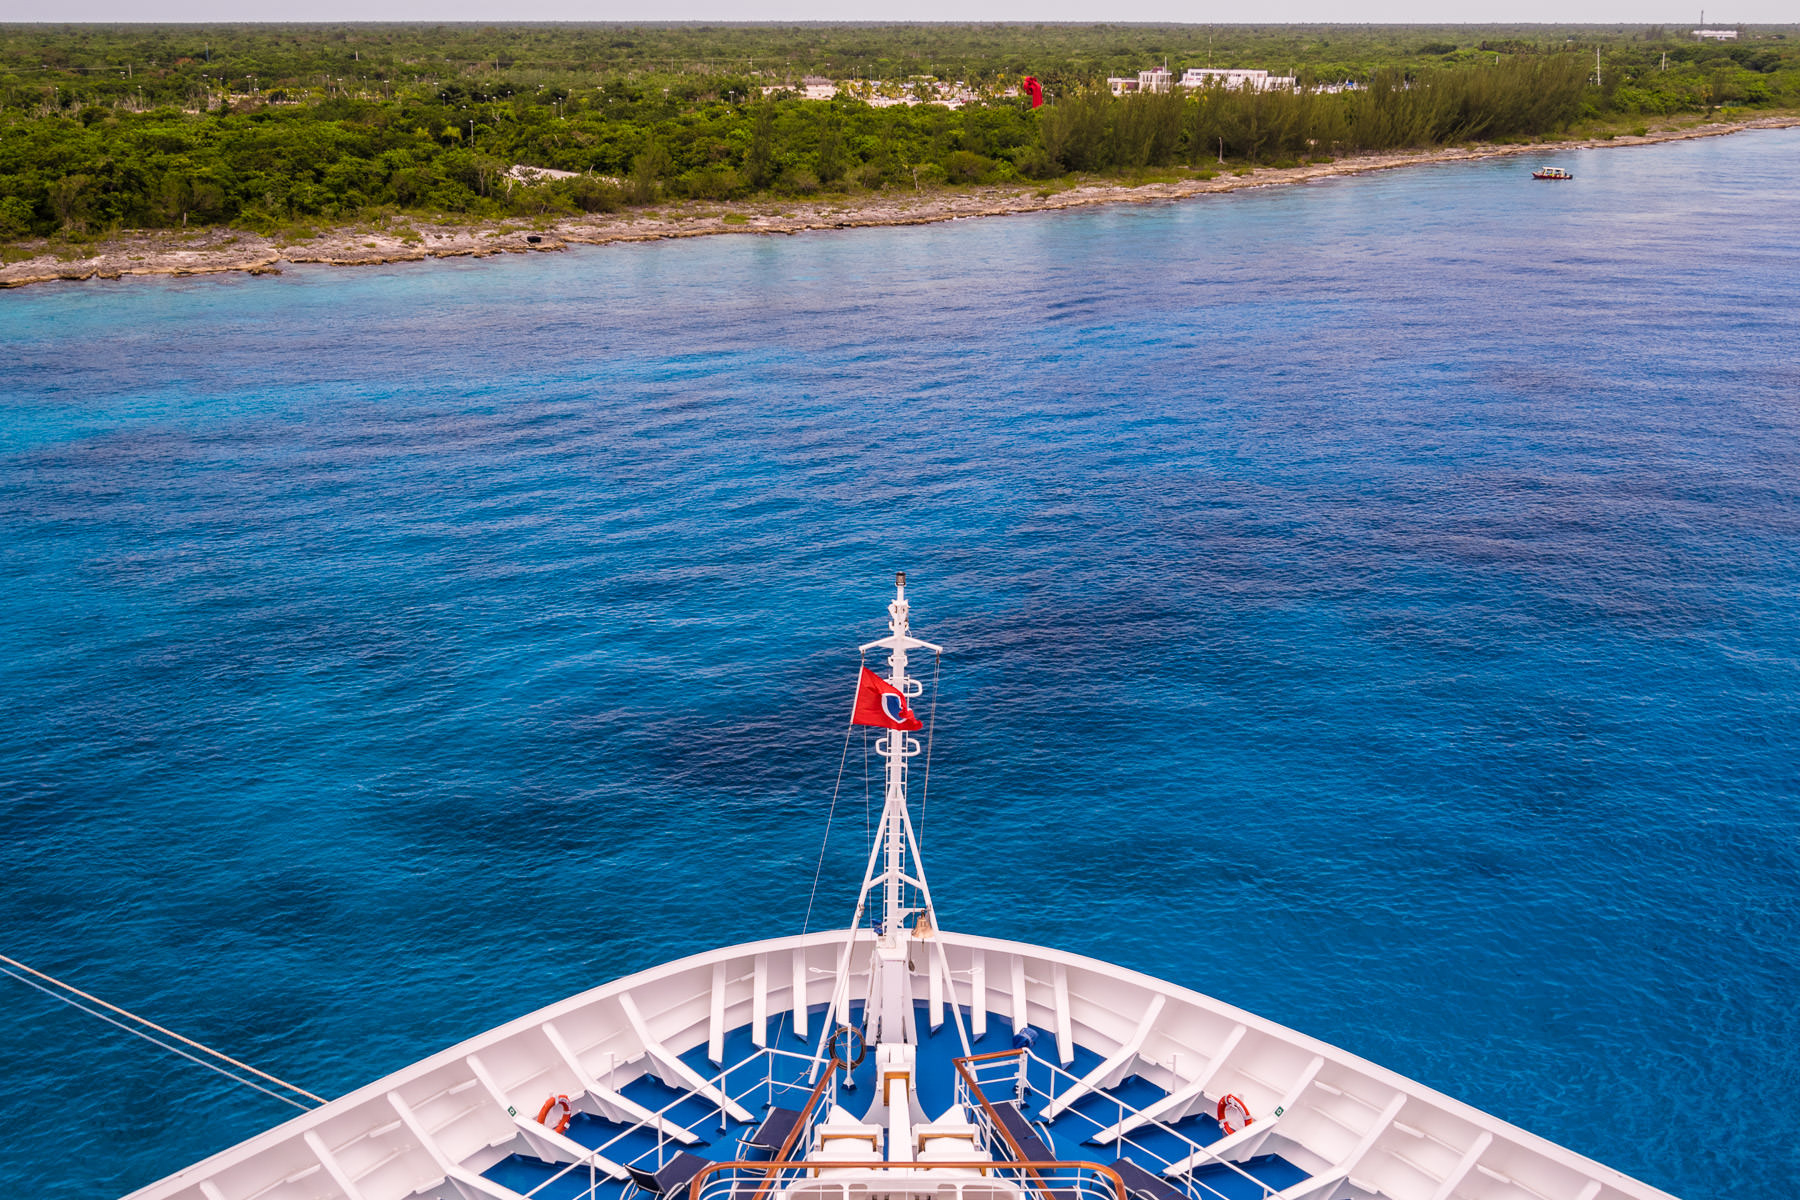 The bow of the cruise ship Carnival Breeze floats in the blue waters just off the coast of Cozumel, Mexico.